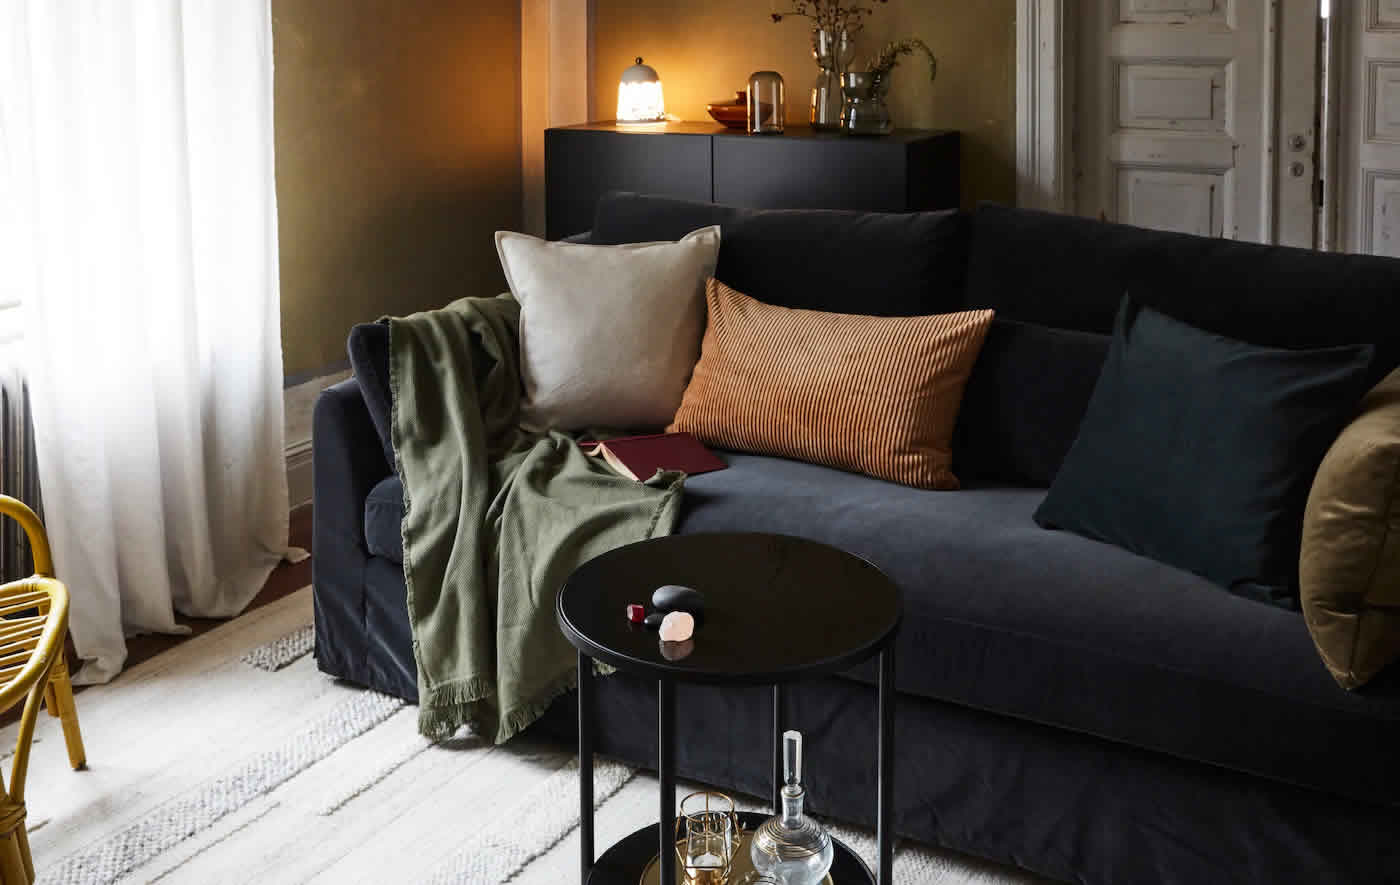 IKEA Ideas - Time for an autumn update